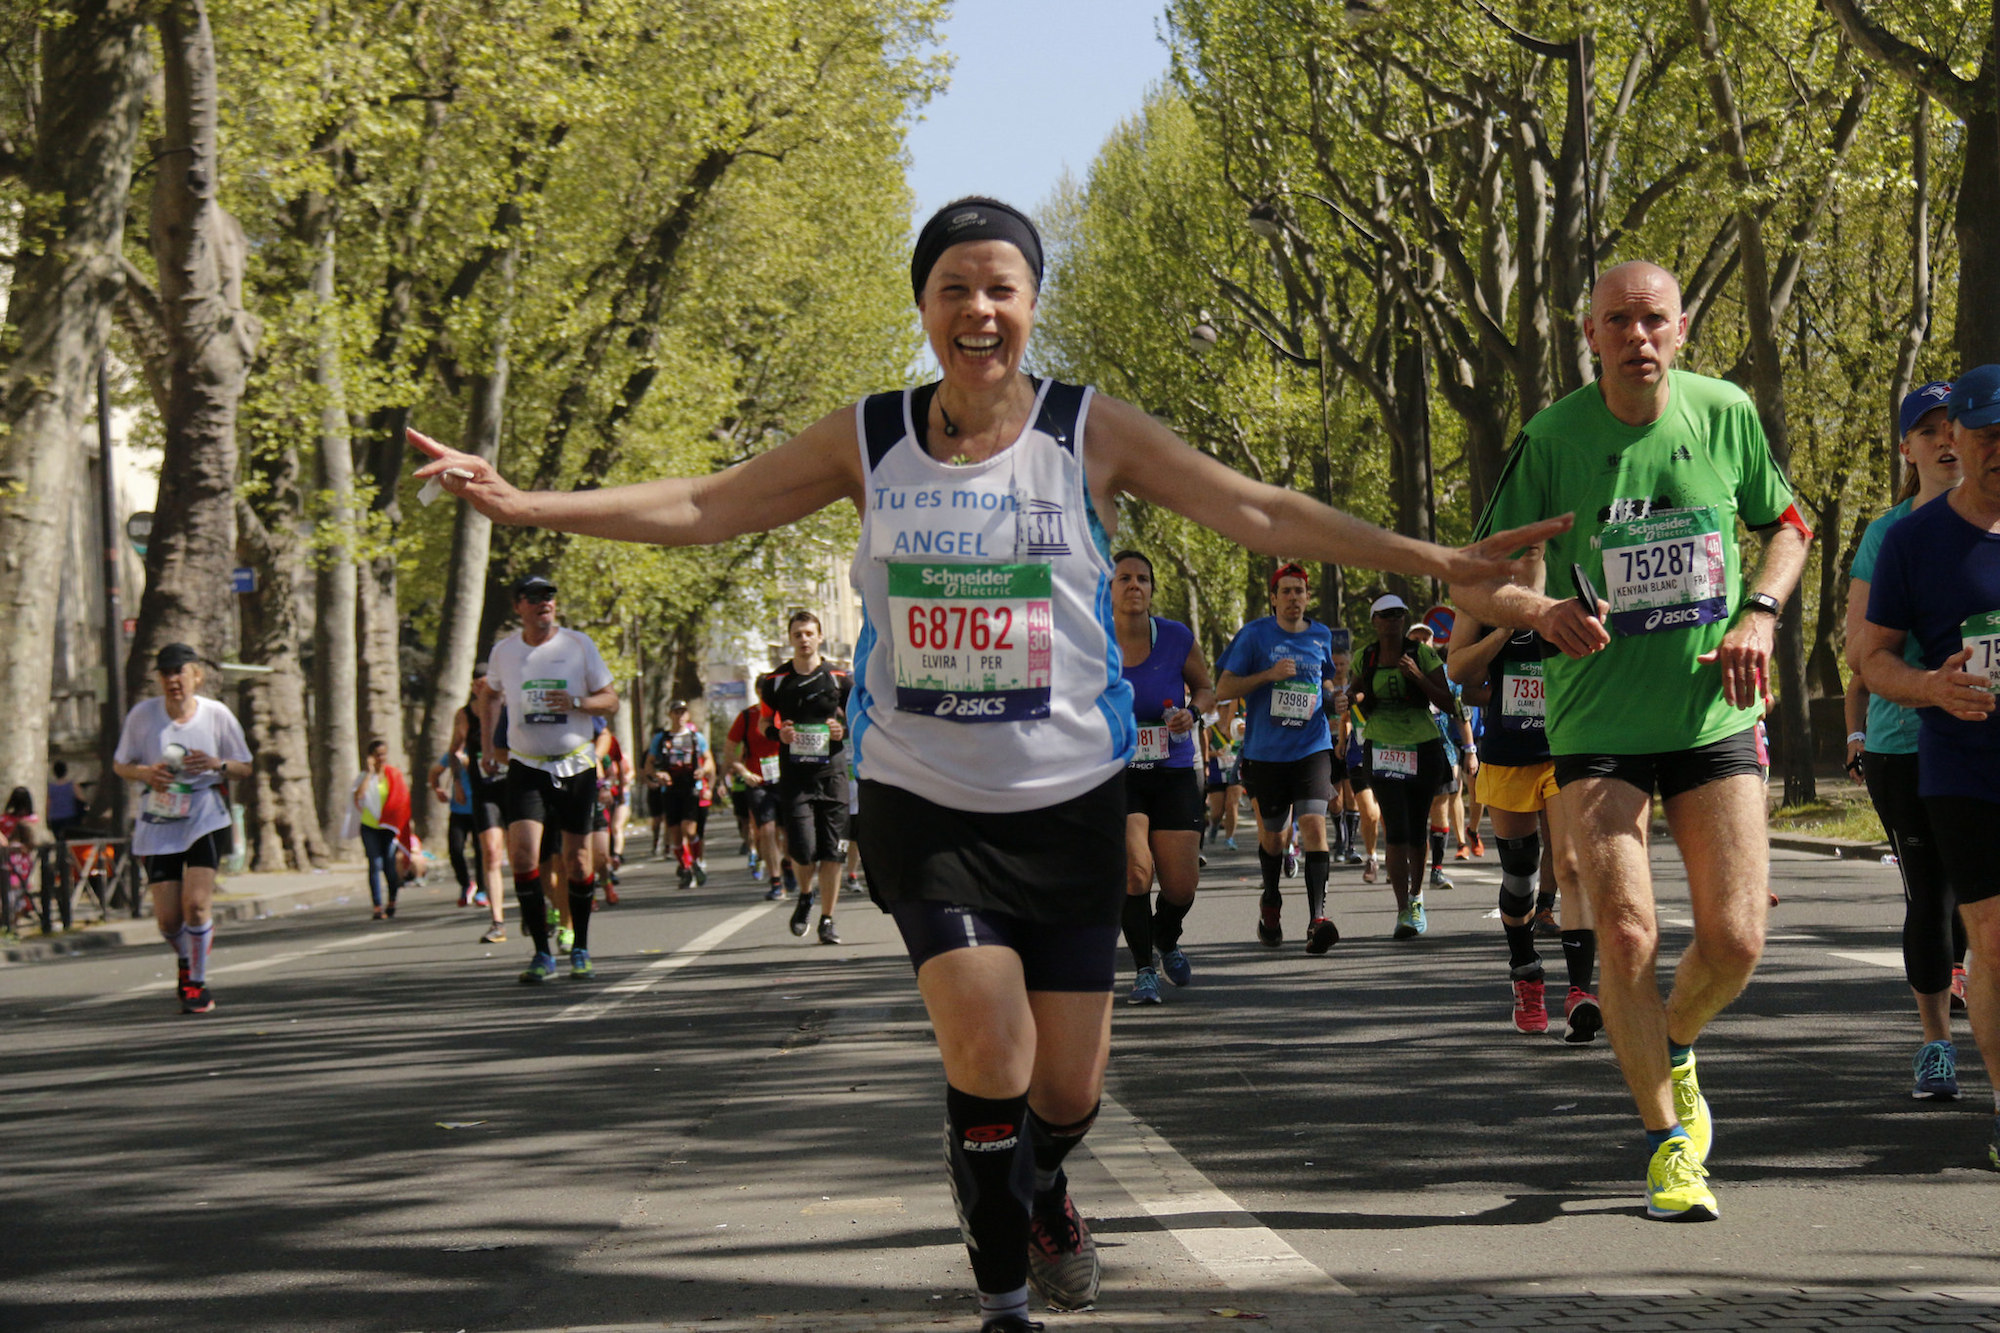 A happy female runner at Paris' annual marathon in April.